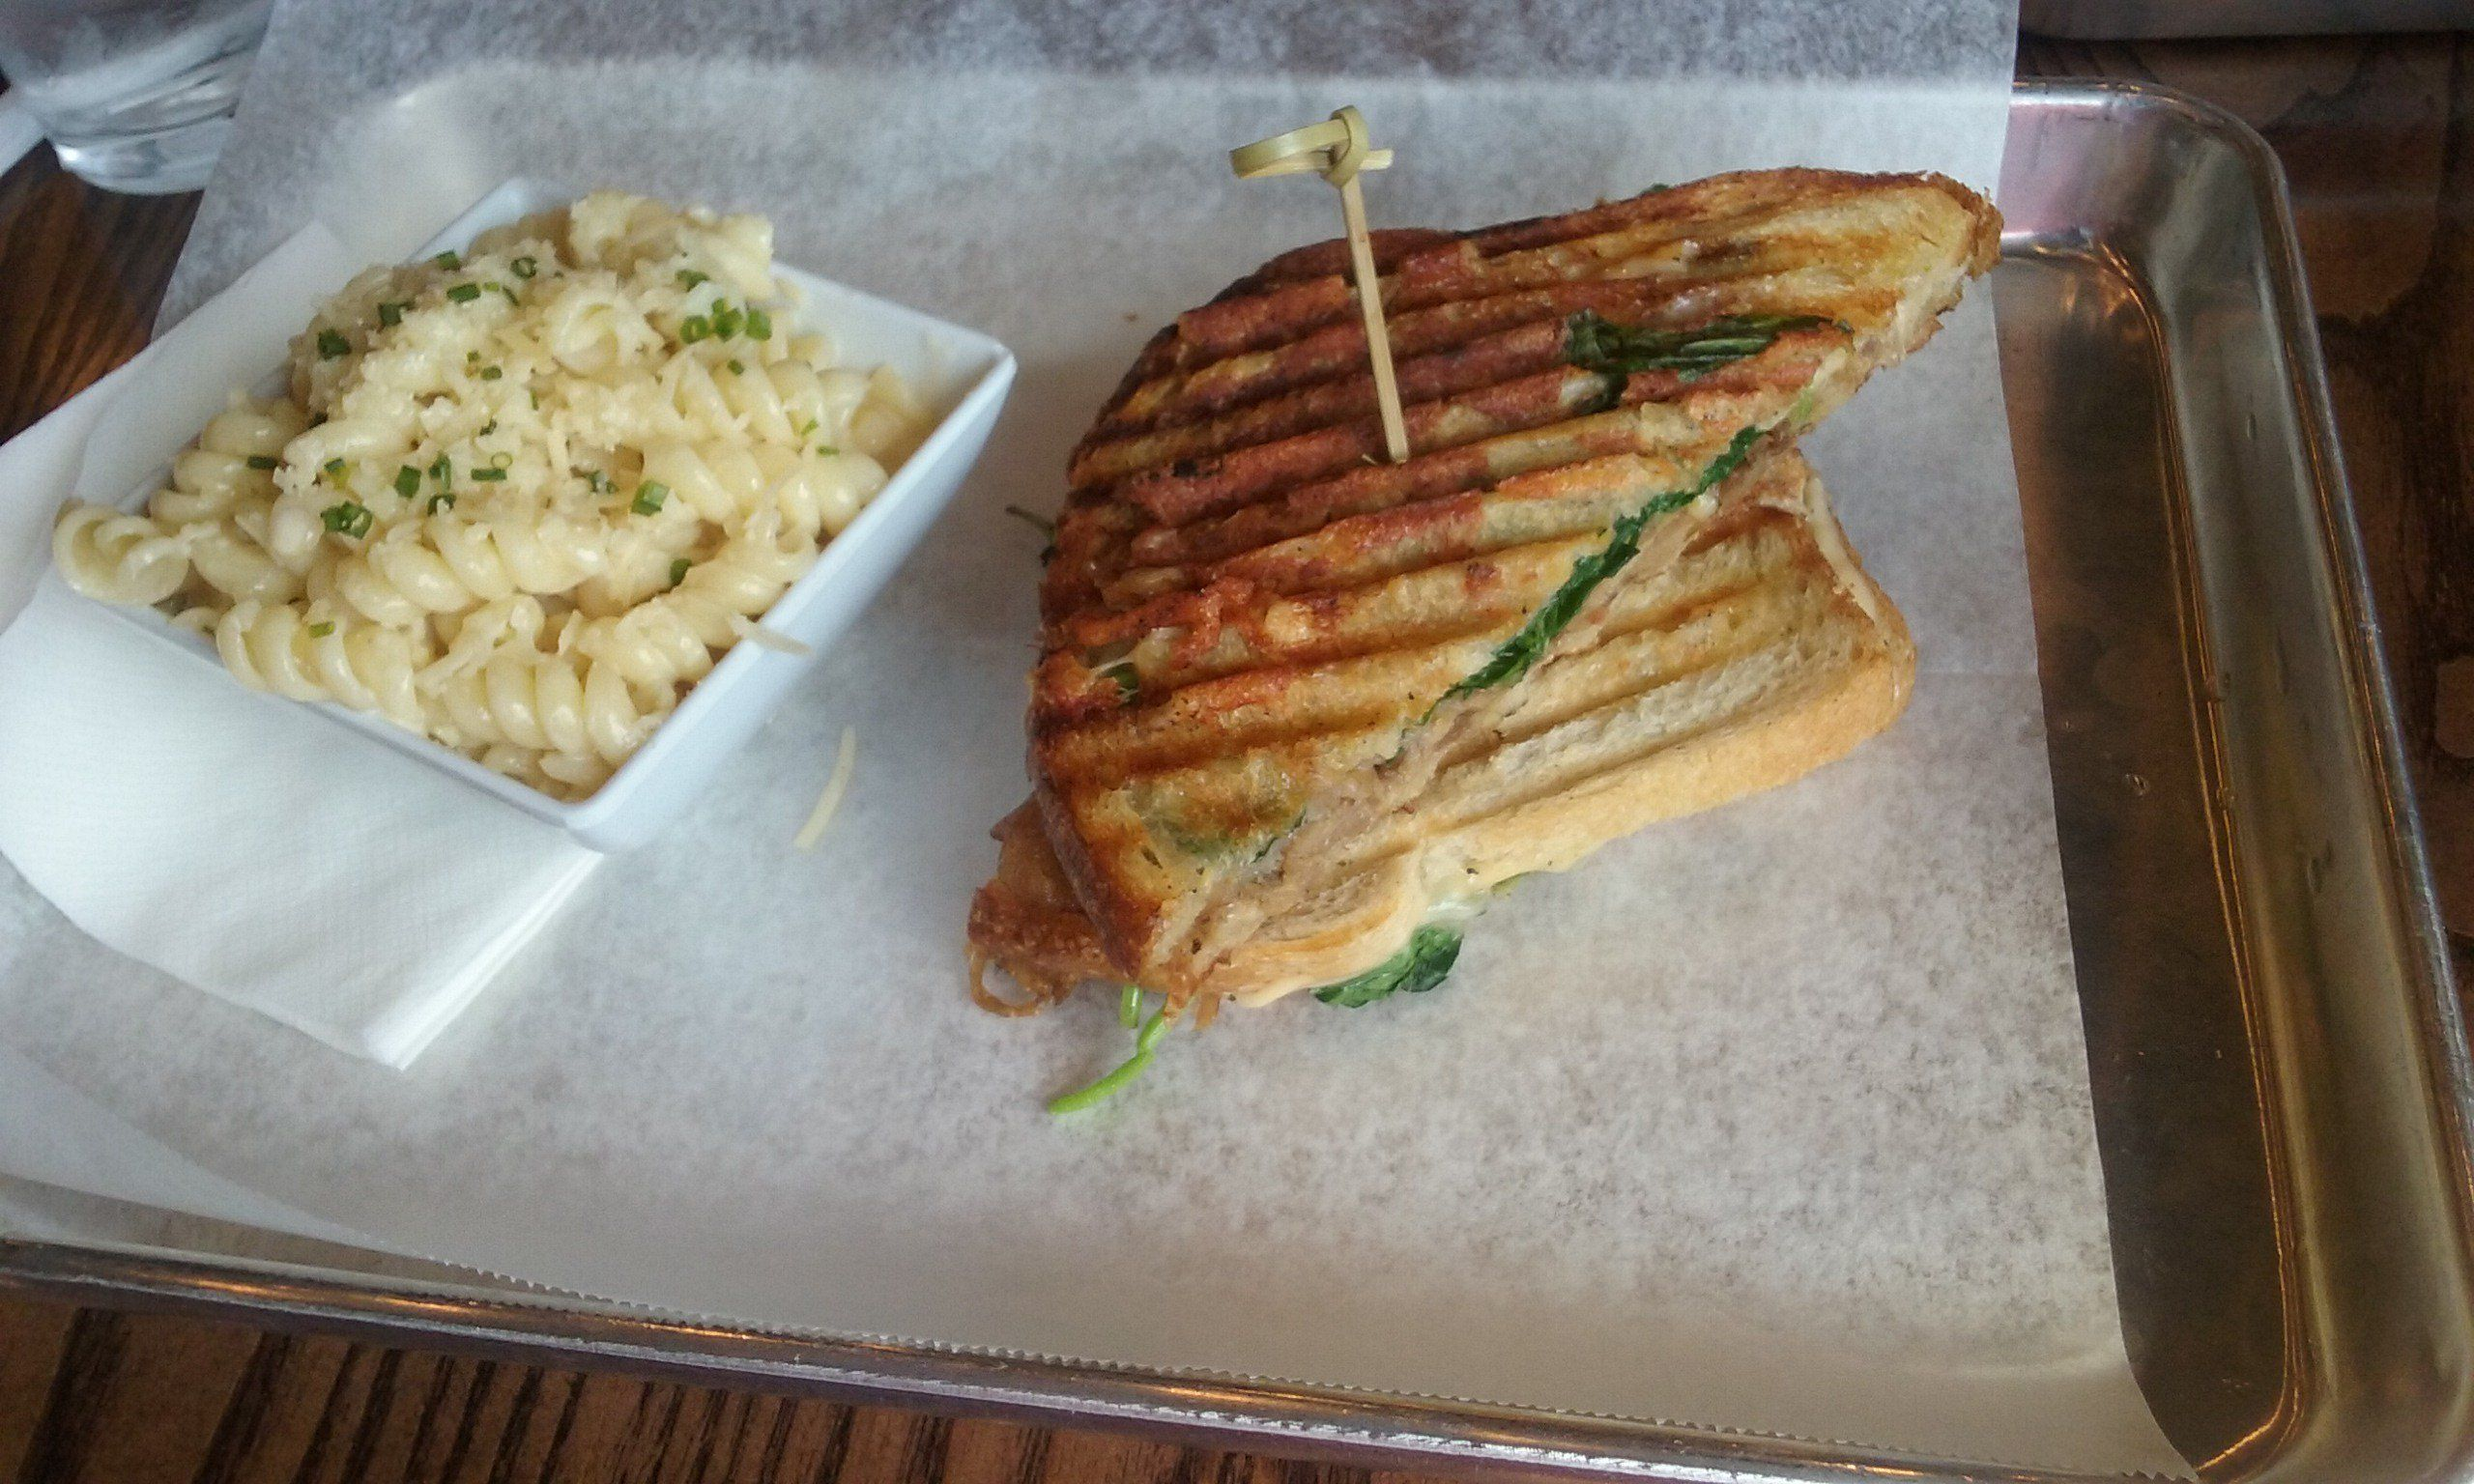 Restaurant Review For Melt Kitchen And Bar Restaurant In Greensboro North Carolina Food Food Quality Food Dishes